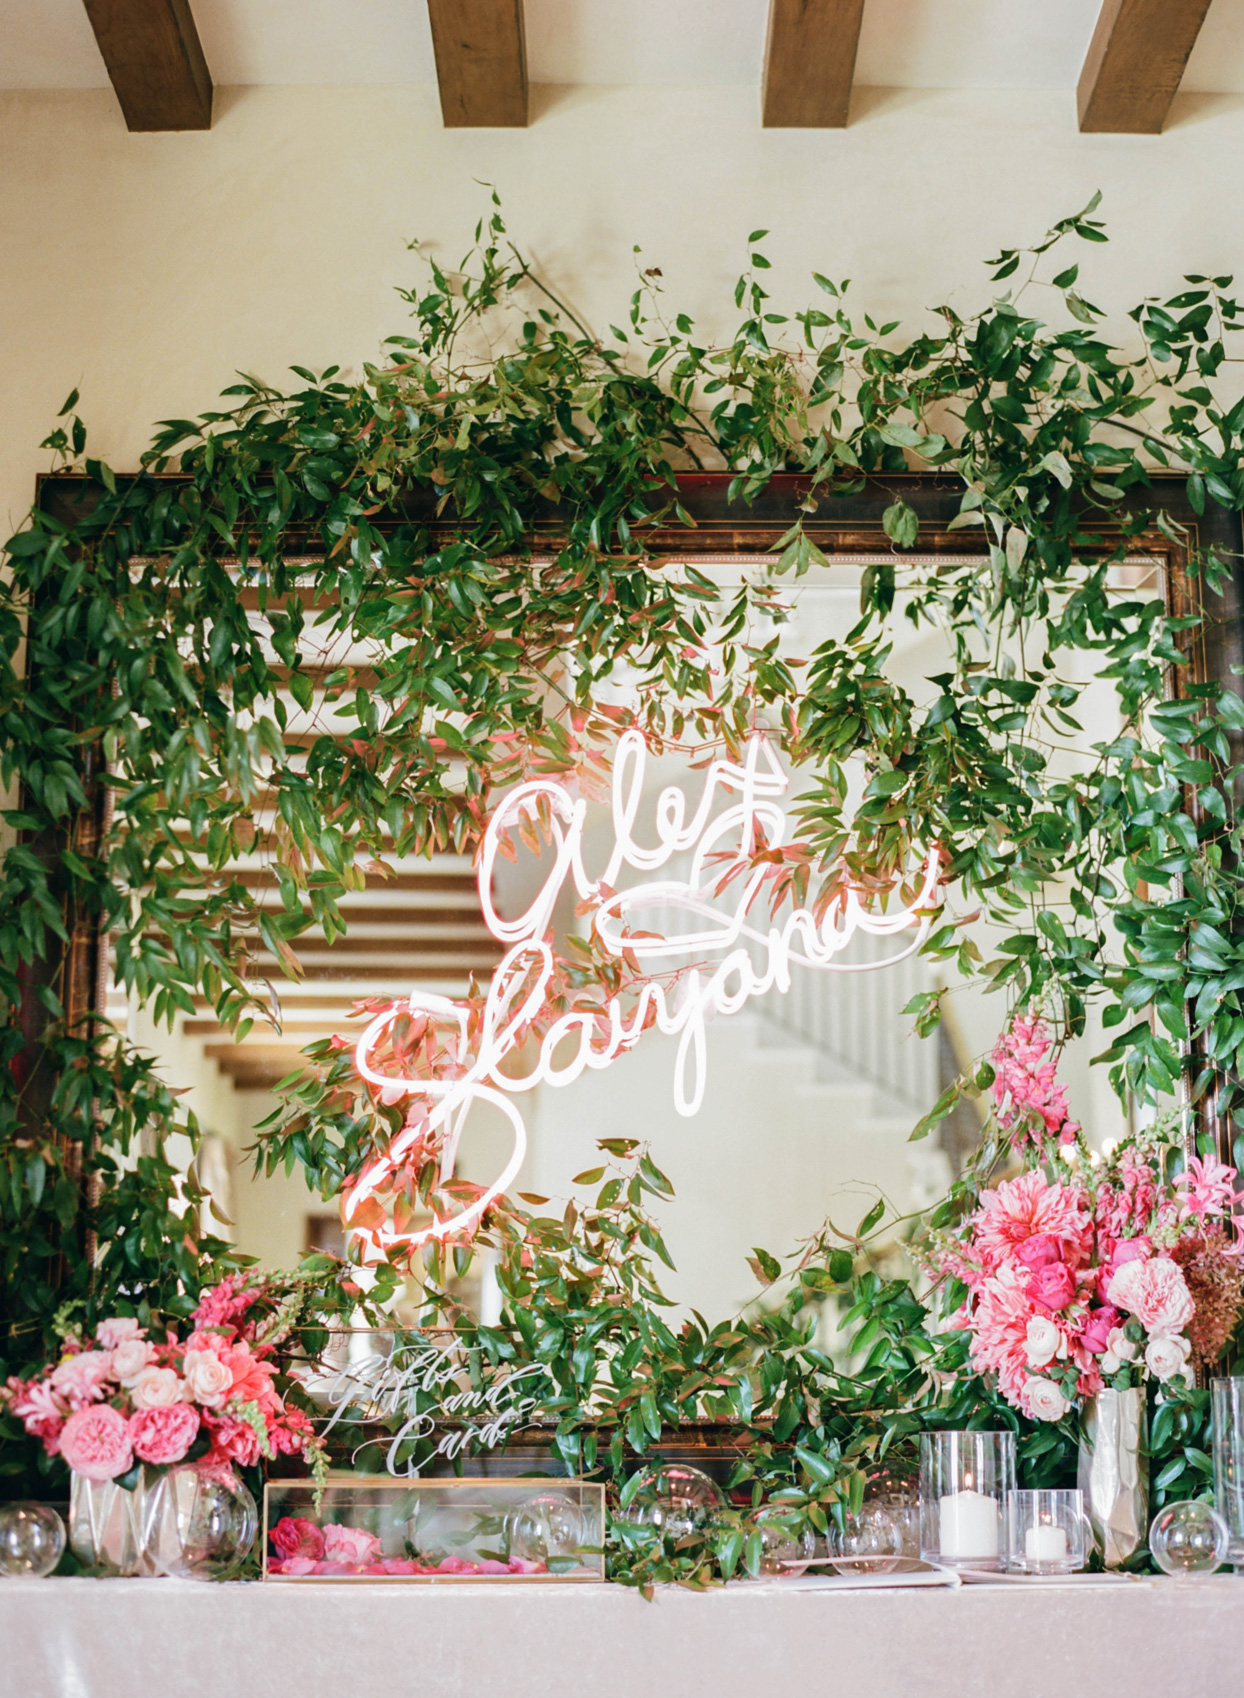 neon sign displaying bride and grooms names